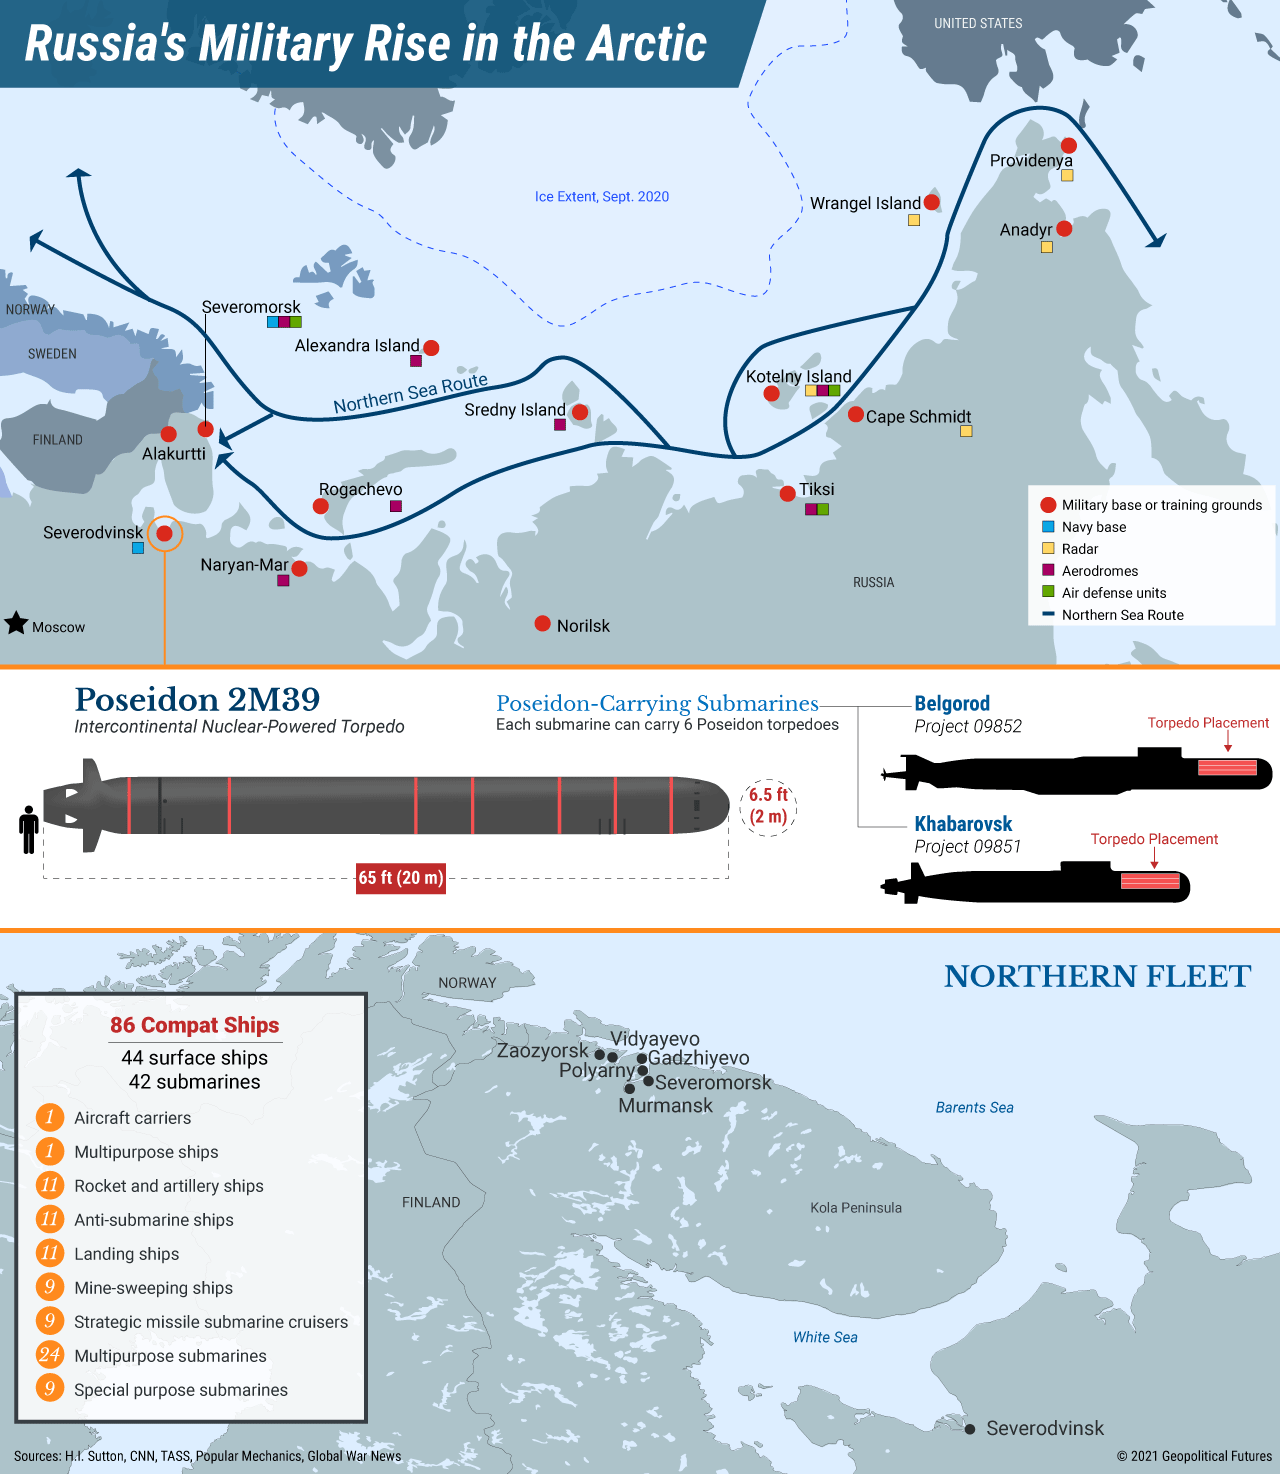 Russia's Military Rise in the Arctic